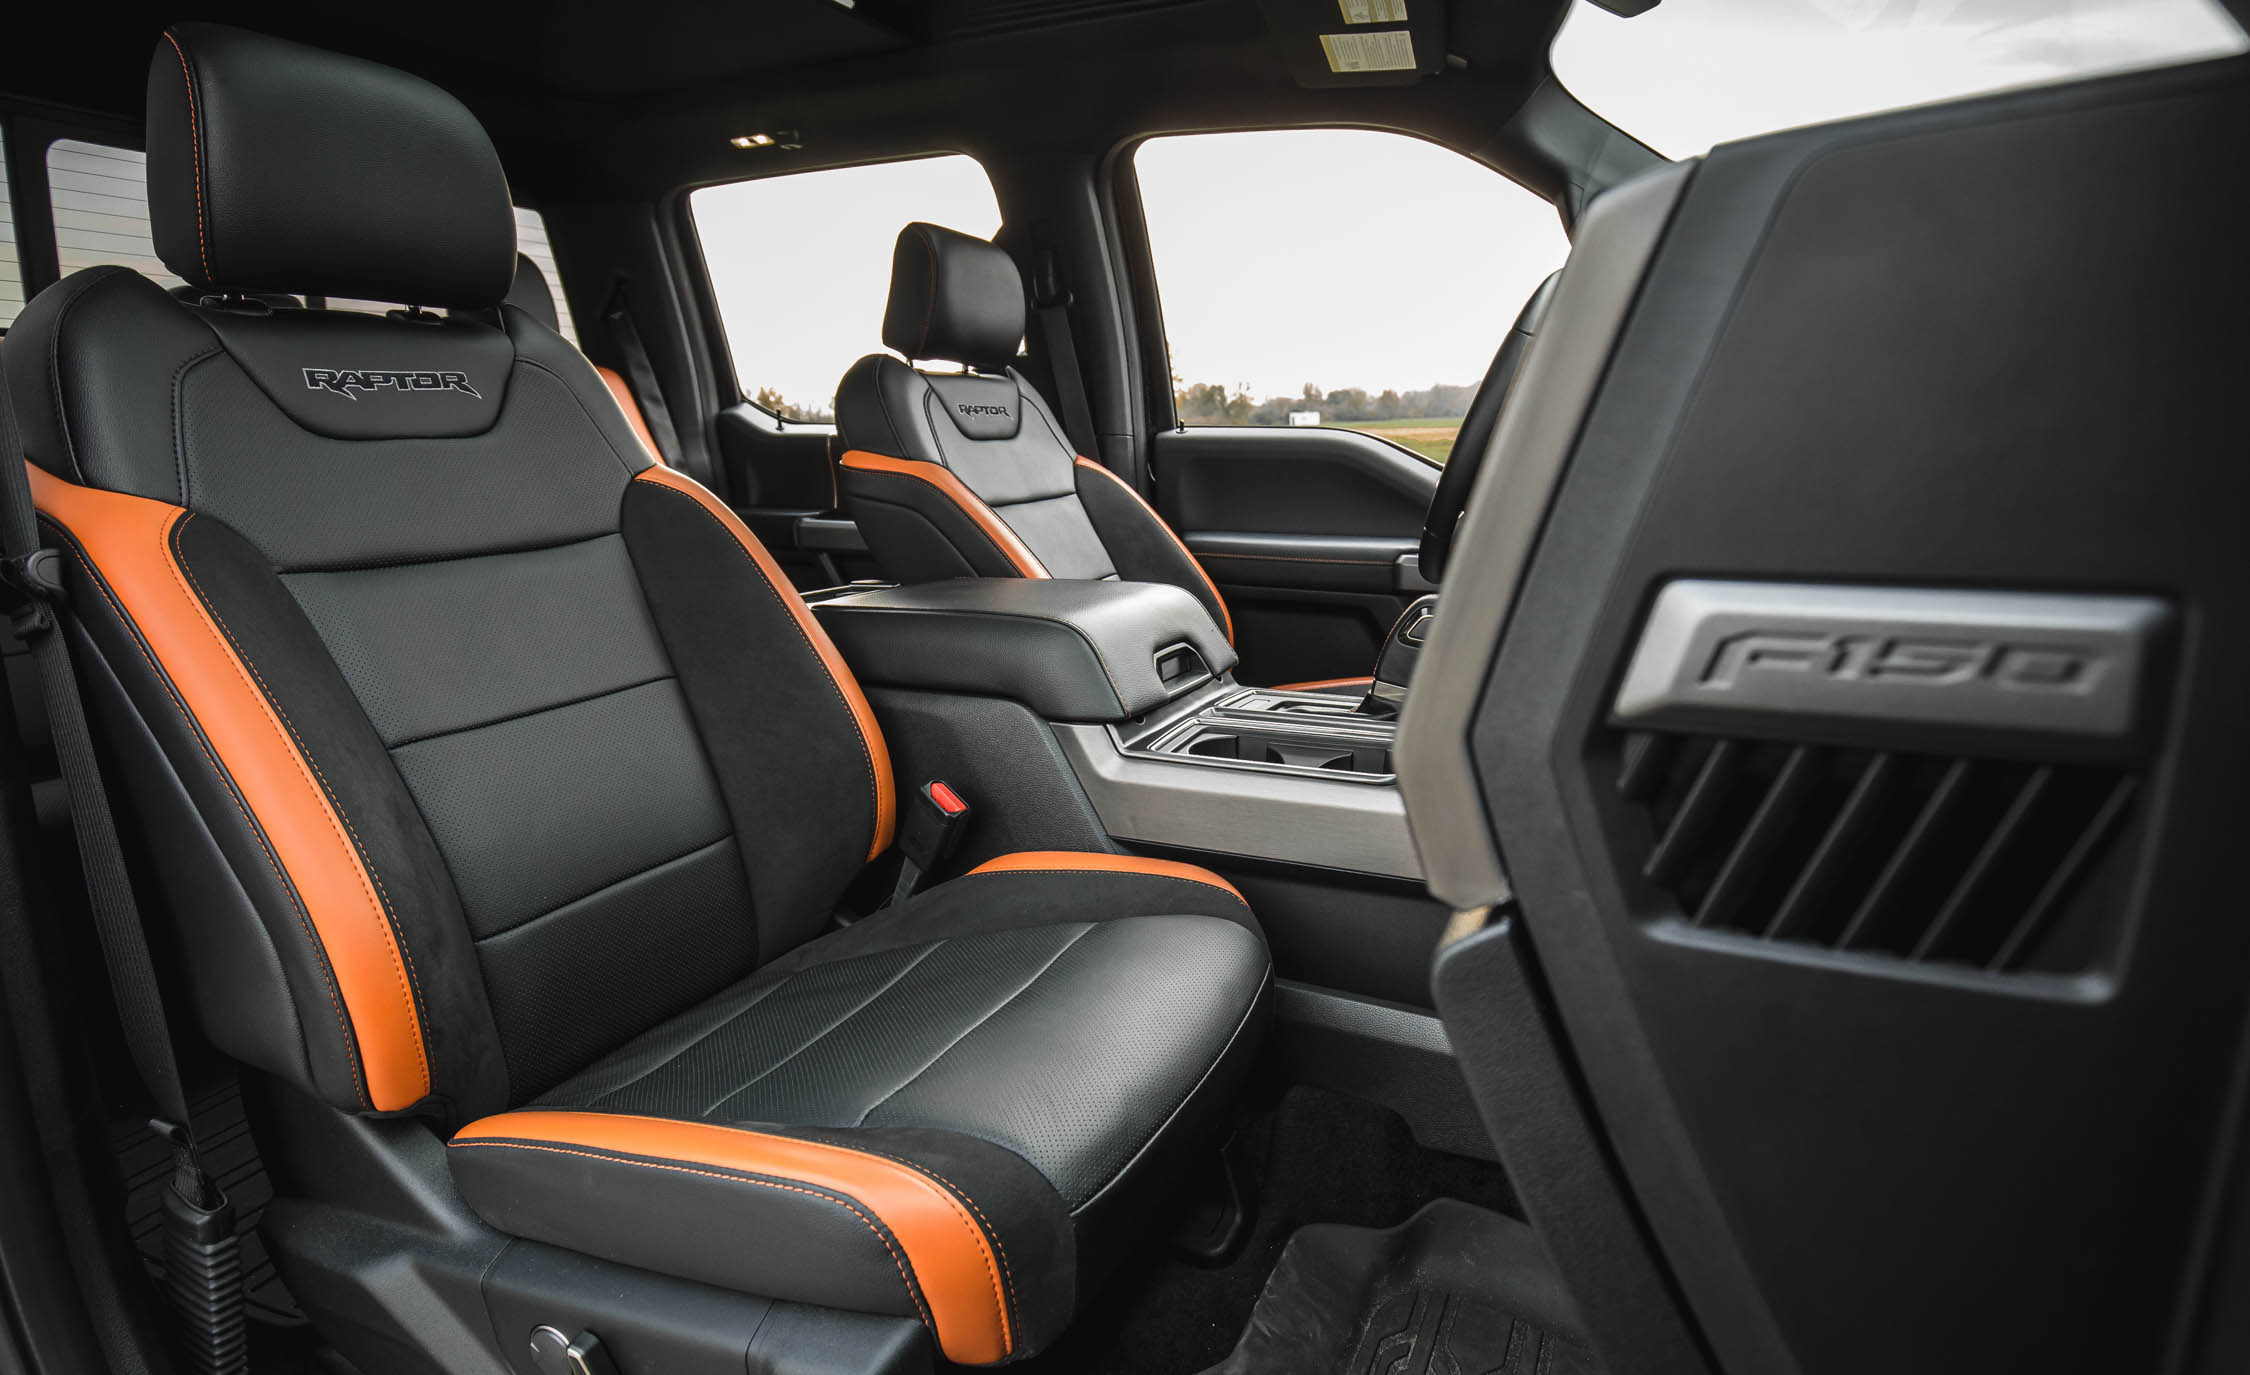 2017 Ford F 150 Raptor SuperCrew Interior Seats Front (View 23 of 47)